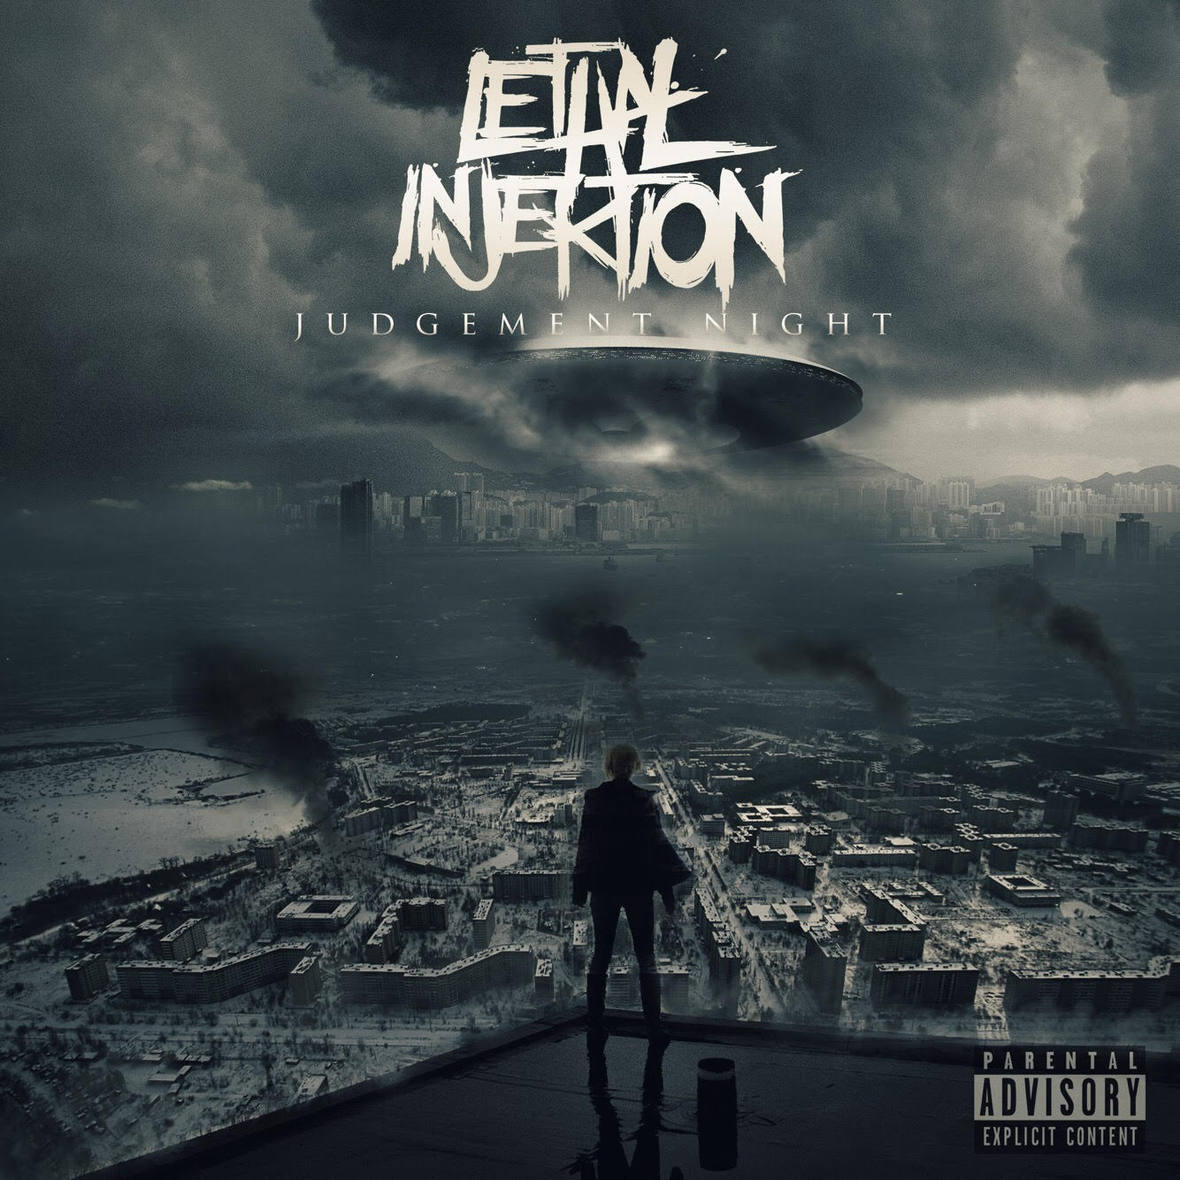 lethal injektion release official music video for